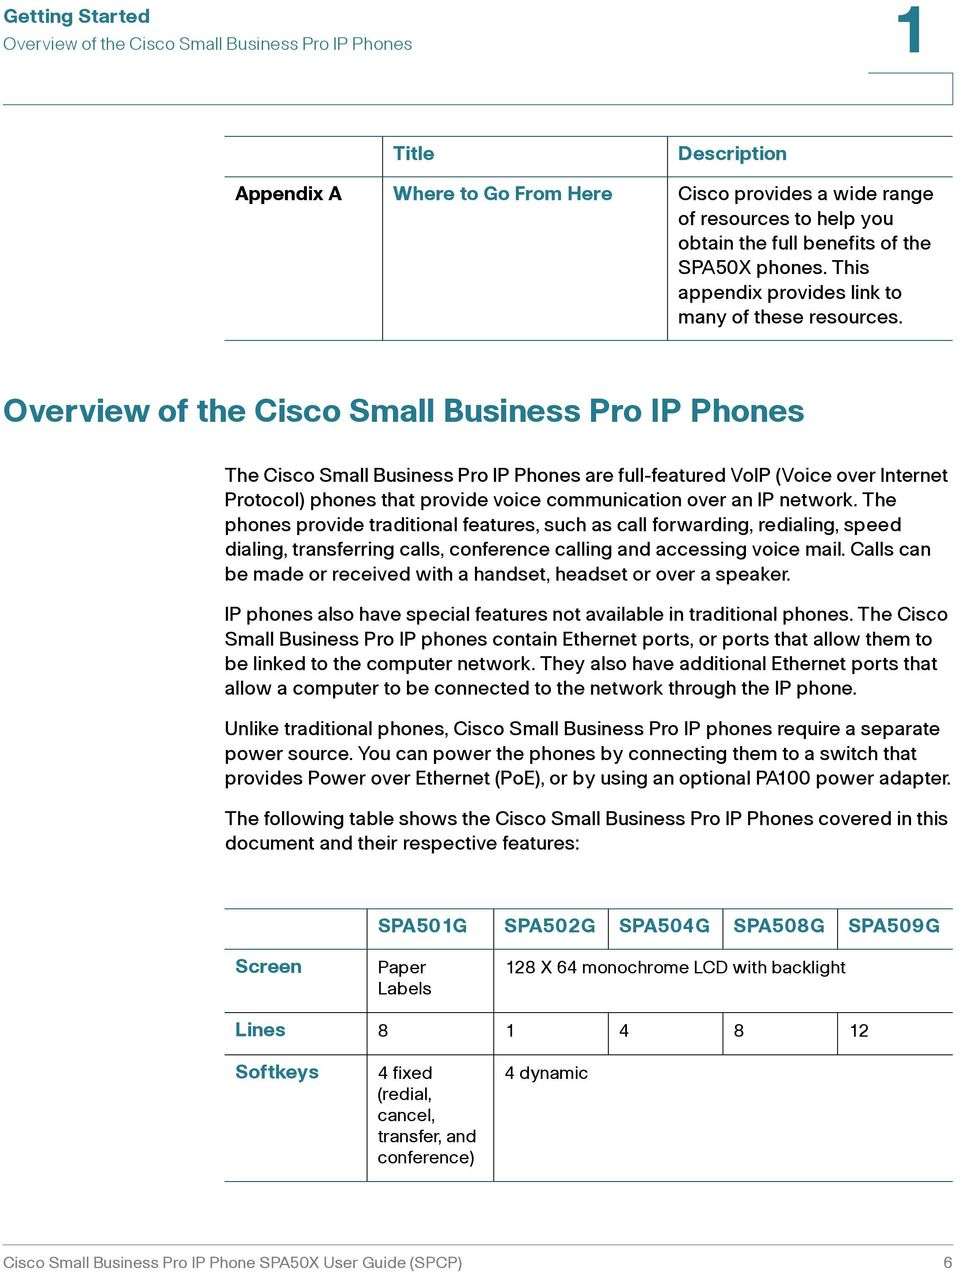 Overview of the Cisco Small Business Pro IP Phones The Cisco Small Business Pro IP Phones are full-featured VoIP (Voice over Internet Protocol) phones that provide voice communication over an IP